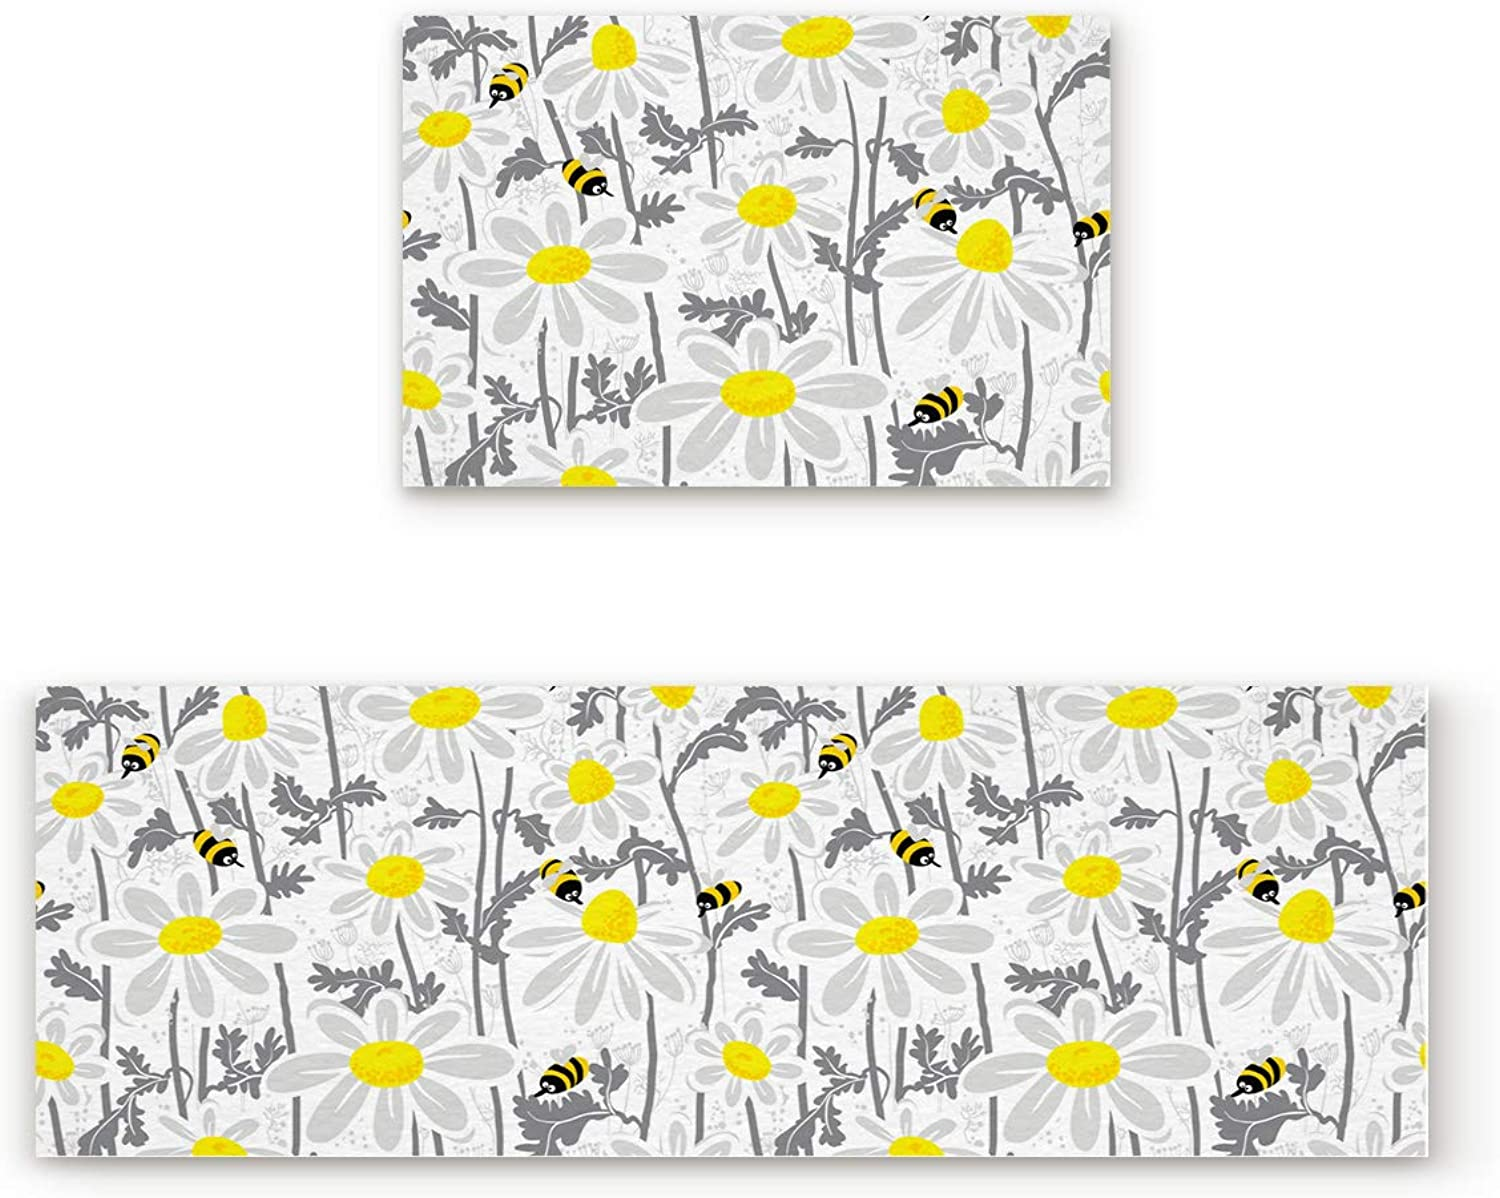 Aomike 2 Piece Non-Slip Kitchen Mat Rubber Backing Doormat Flower Bed Daisy and Bees Runner Rug Set, Hallway Living Room Balcony Bathroom Carpet Sets (19.7  x 31.5 +19.7  x 63 )